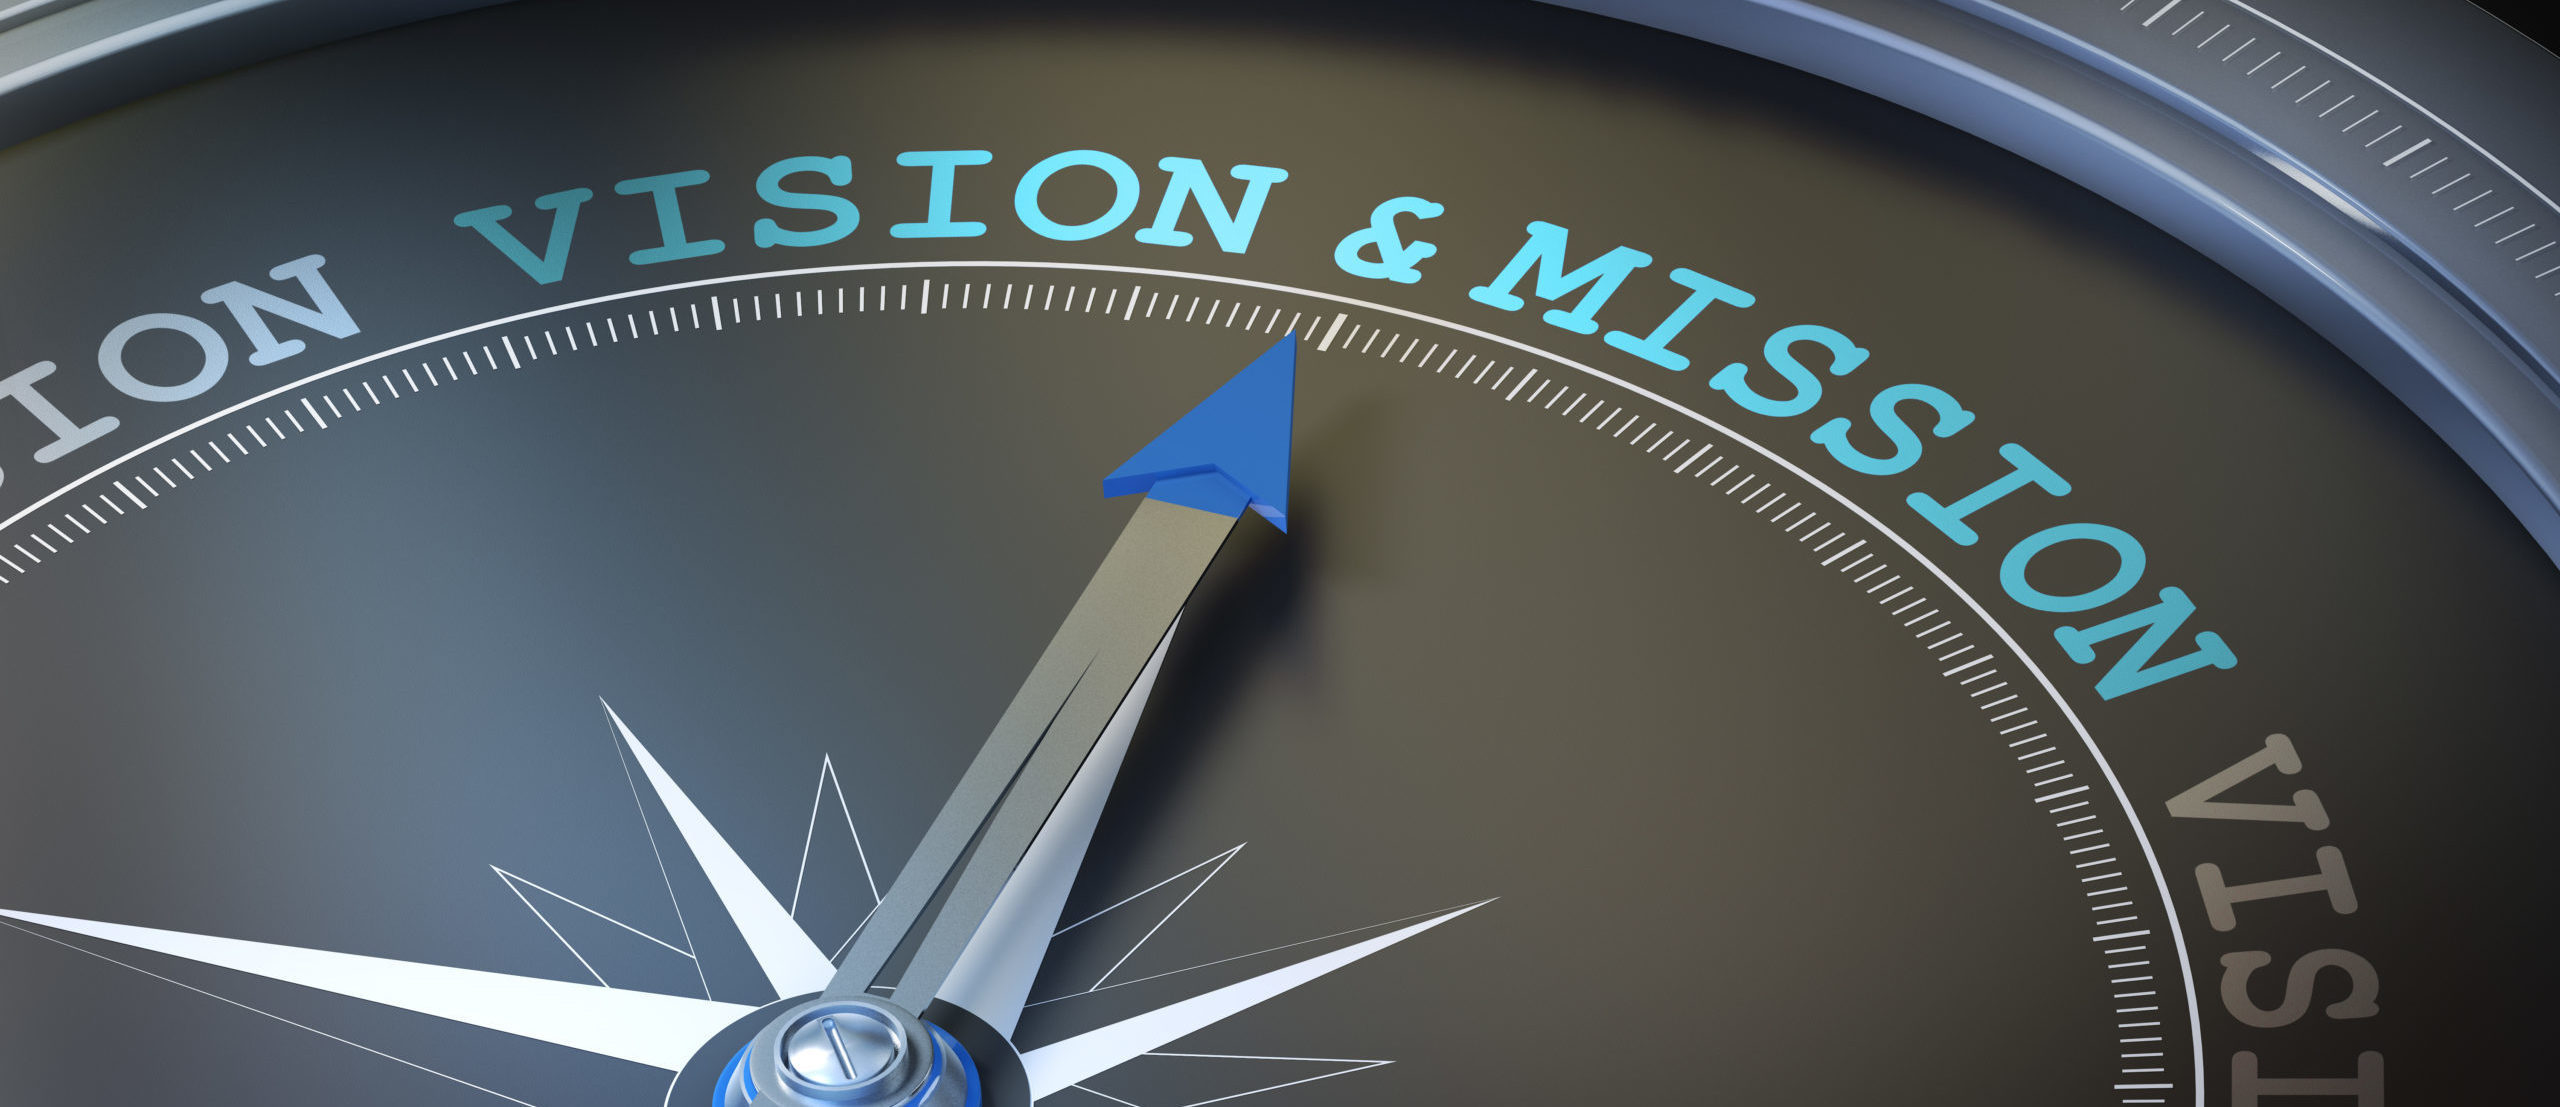 LOOPINGS Innovation Systems Vision Mission Werte